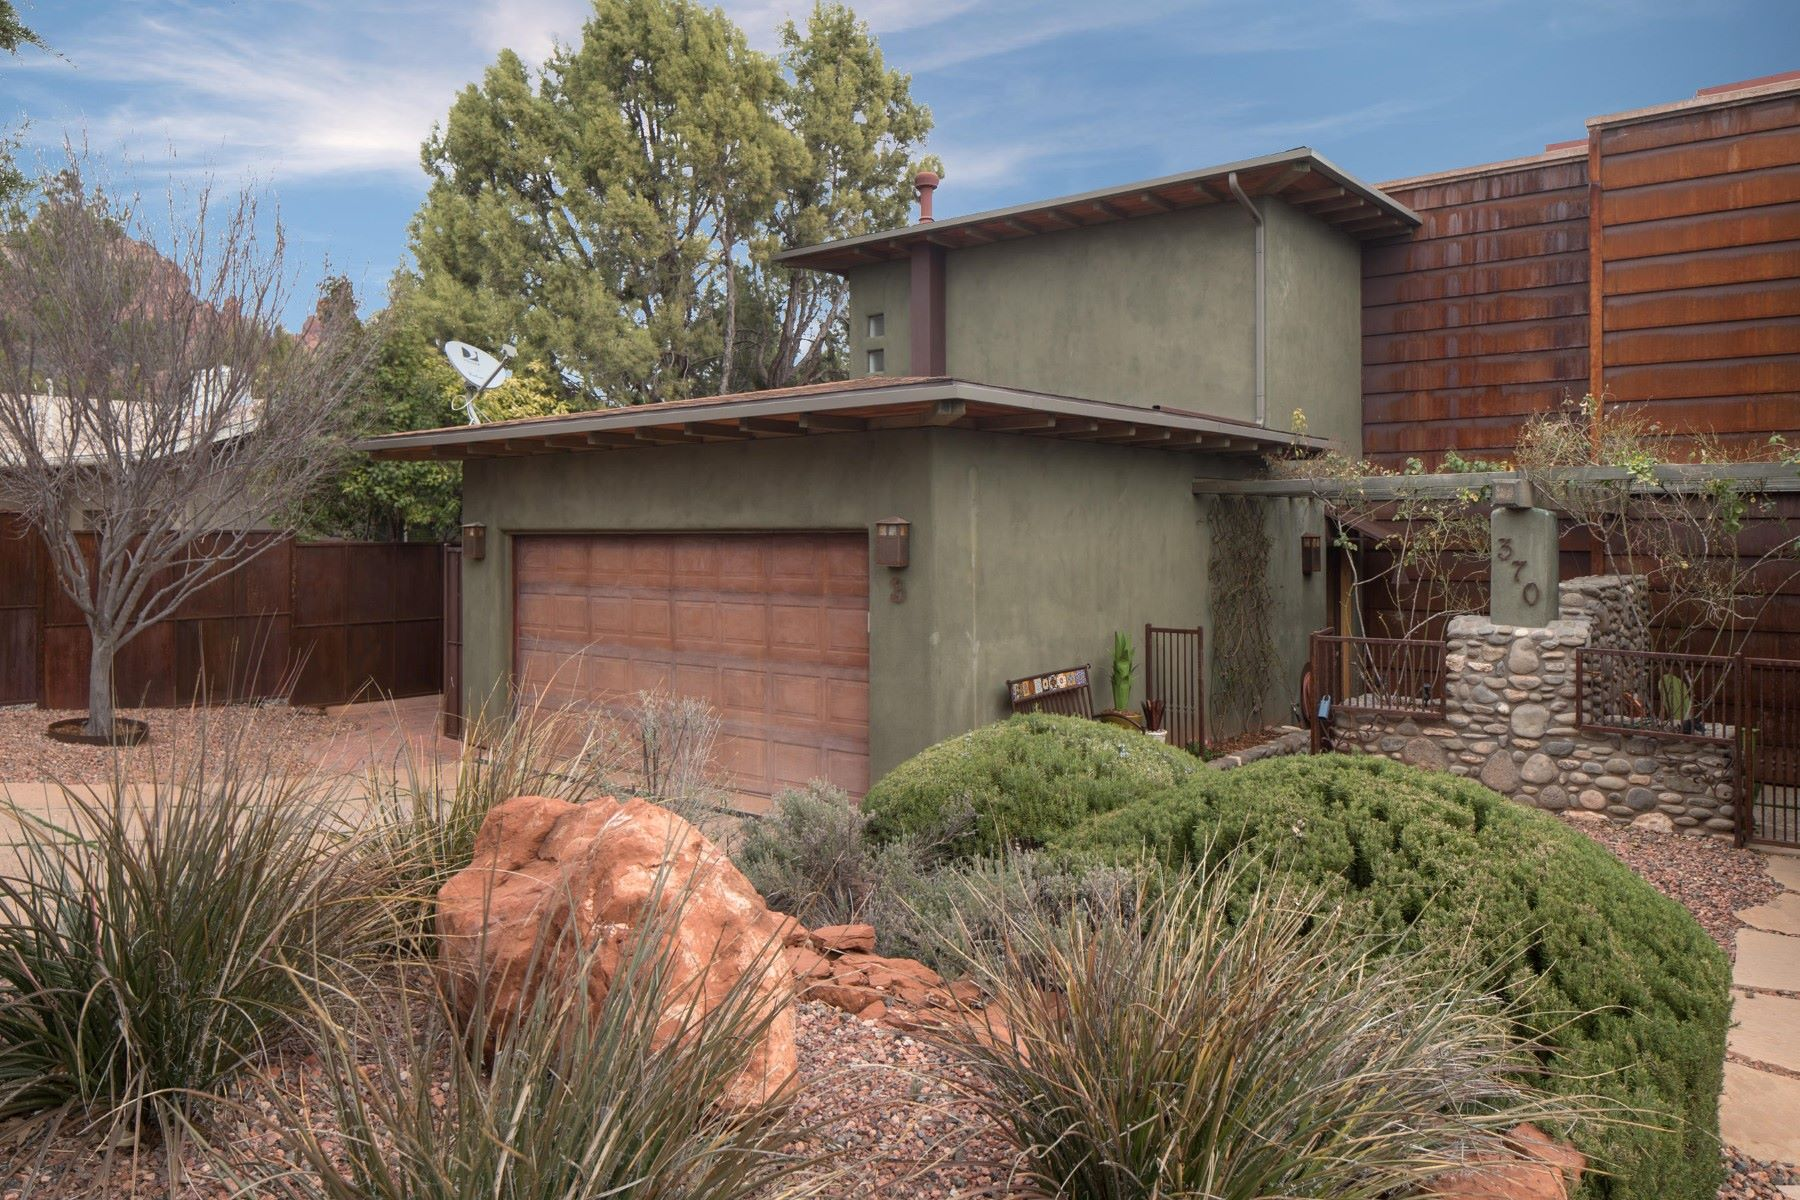 Single Family Home for Sale at Uptown Condo with amazing red rock vies 370 Van Deren Rd B Sedona, Arizona, 86336 United States